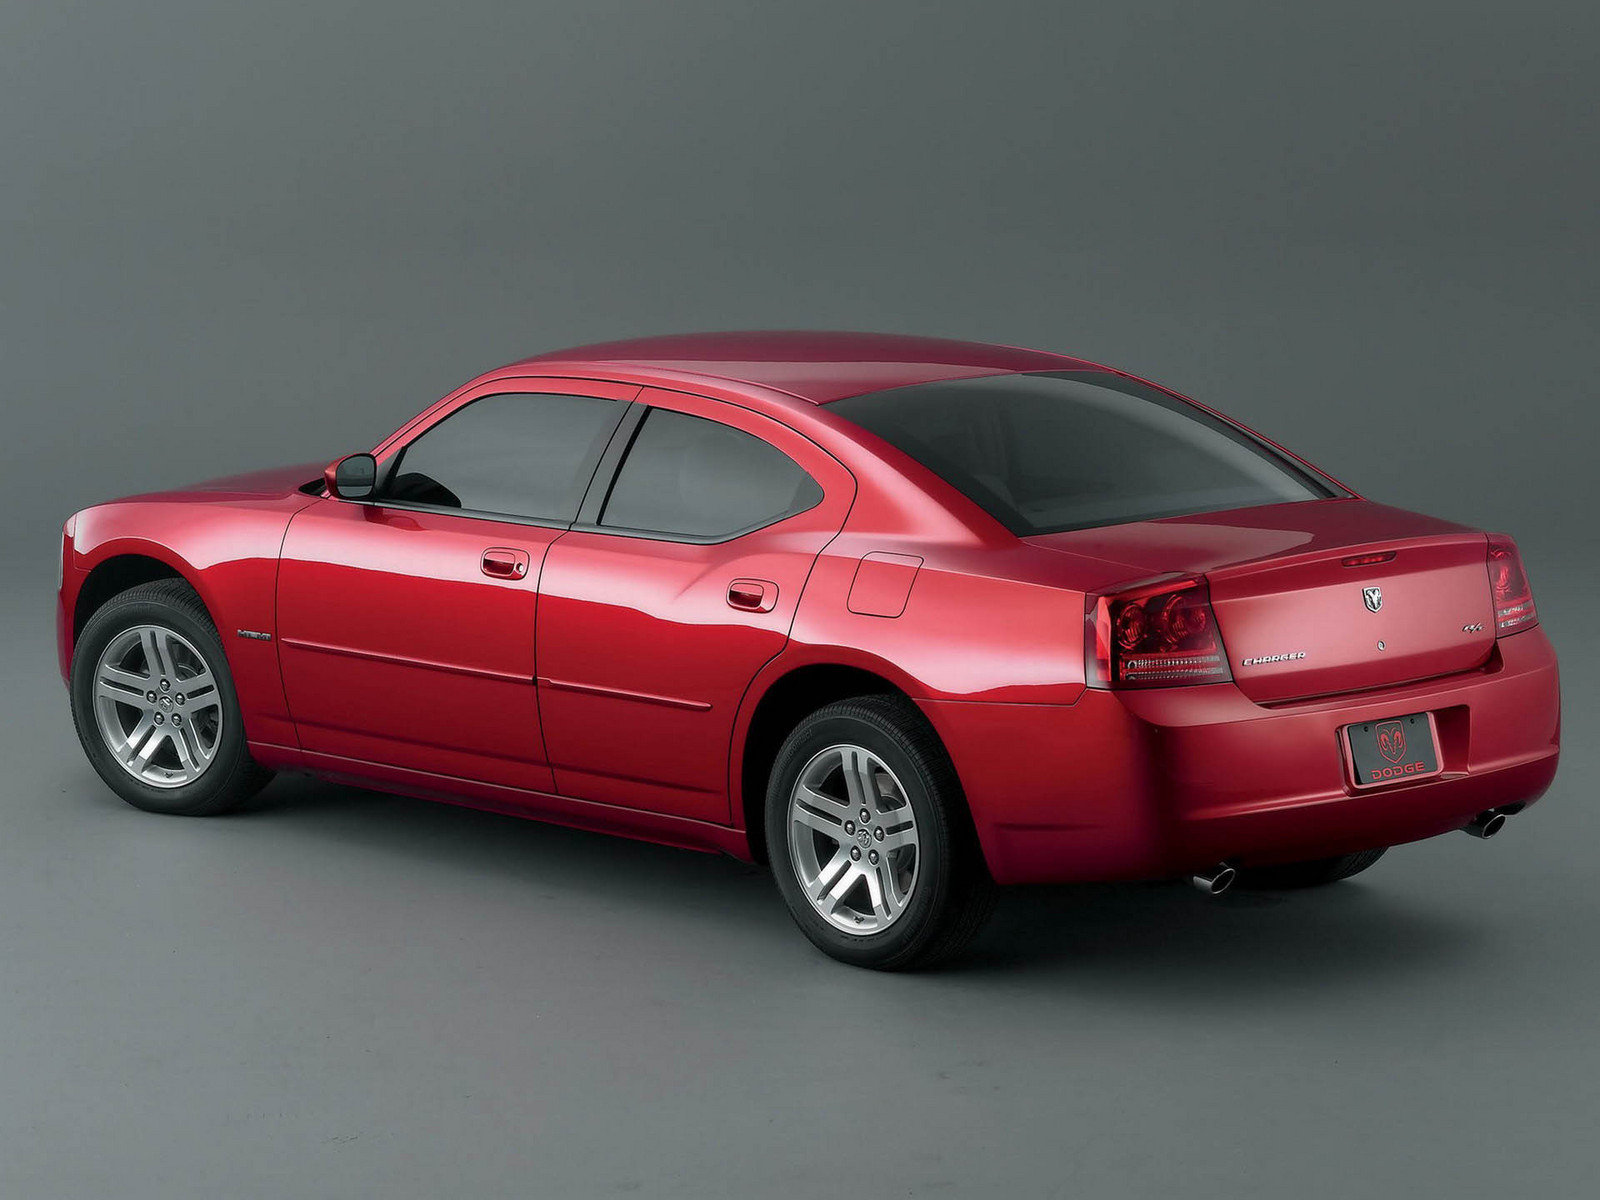 2006 dodge charger rt picture 3658 car review top speed. Black Bedroom Furniture Sets. Home Design Ideas